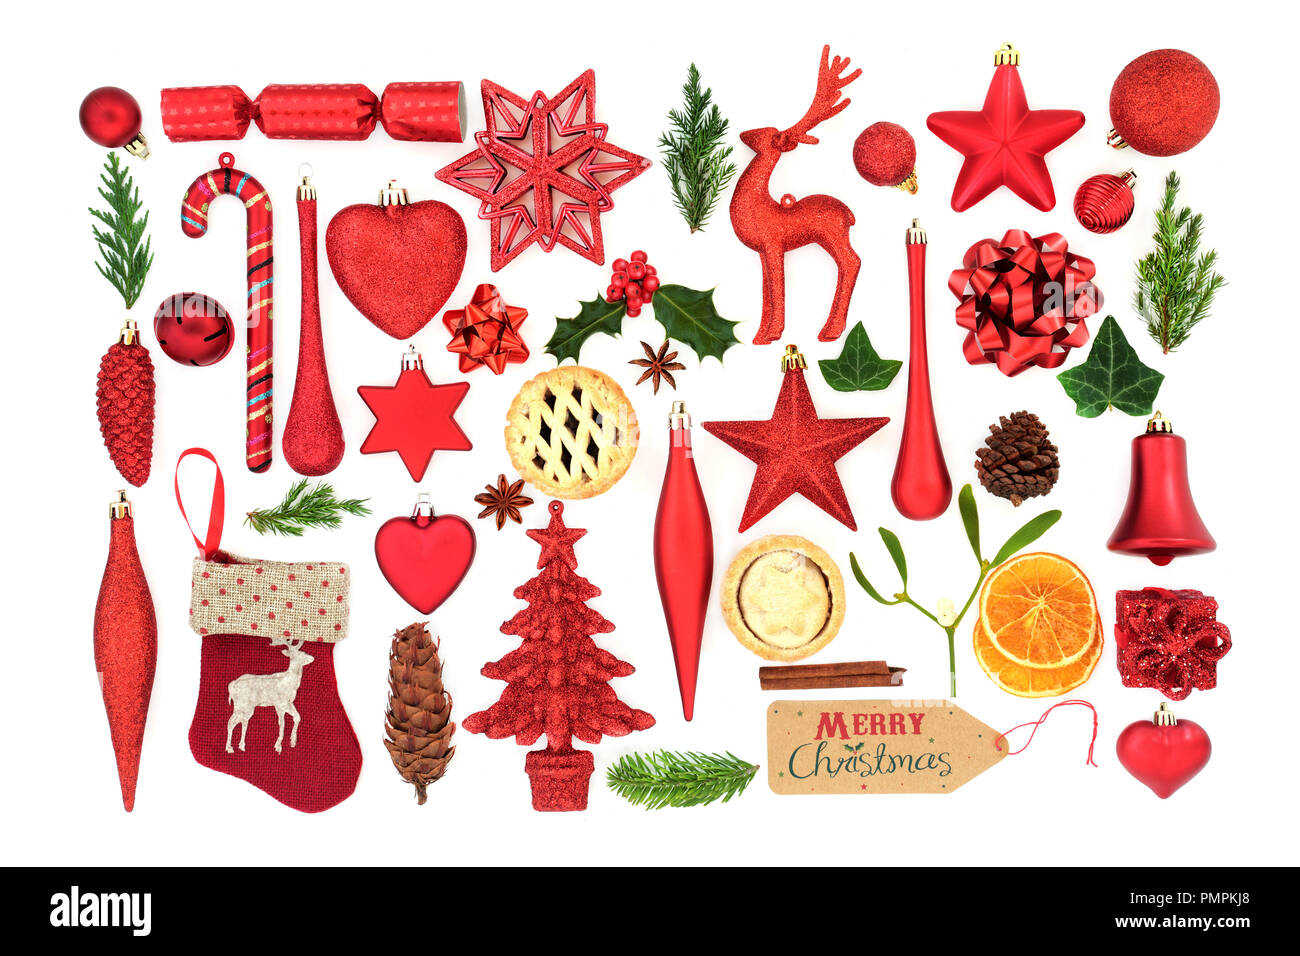 Christmas symbols with tree bauble decorations, winter flora and food items on white background. Festive Christmas card for the holiday season. - Stock Image